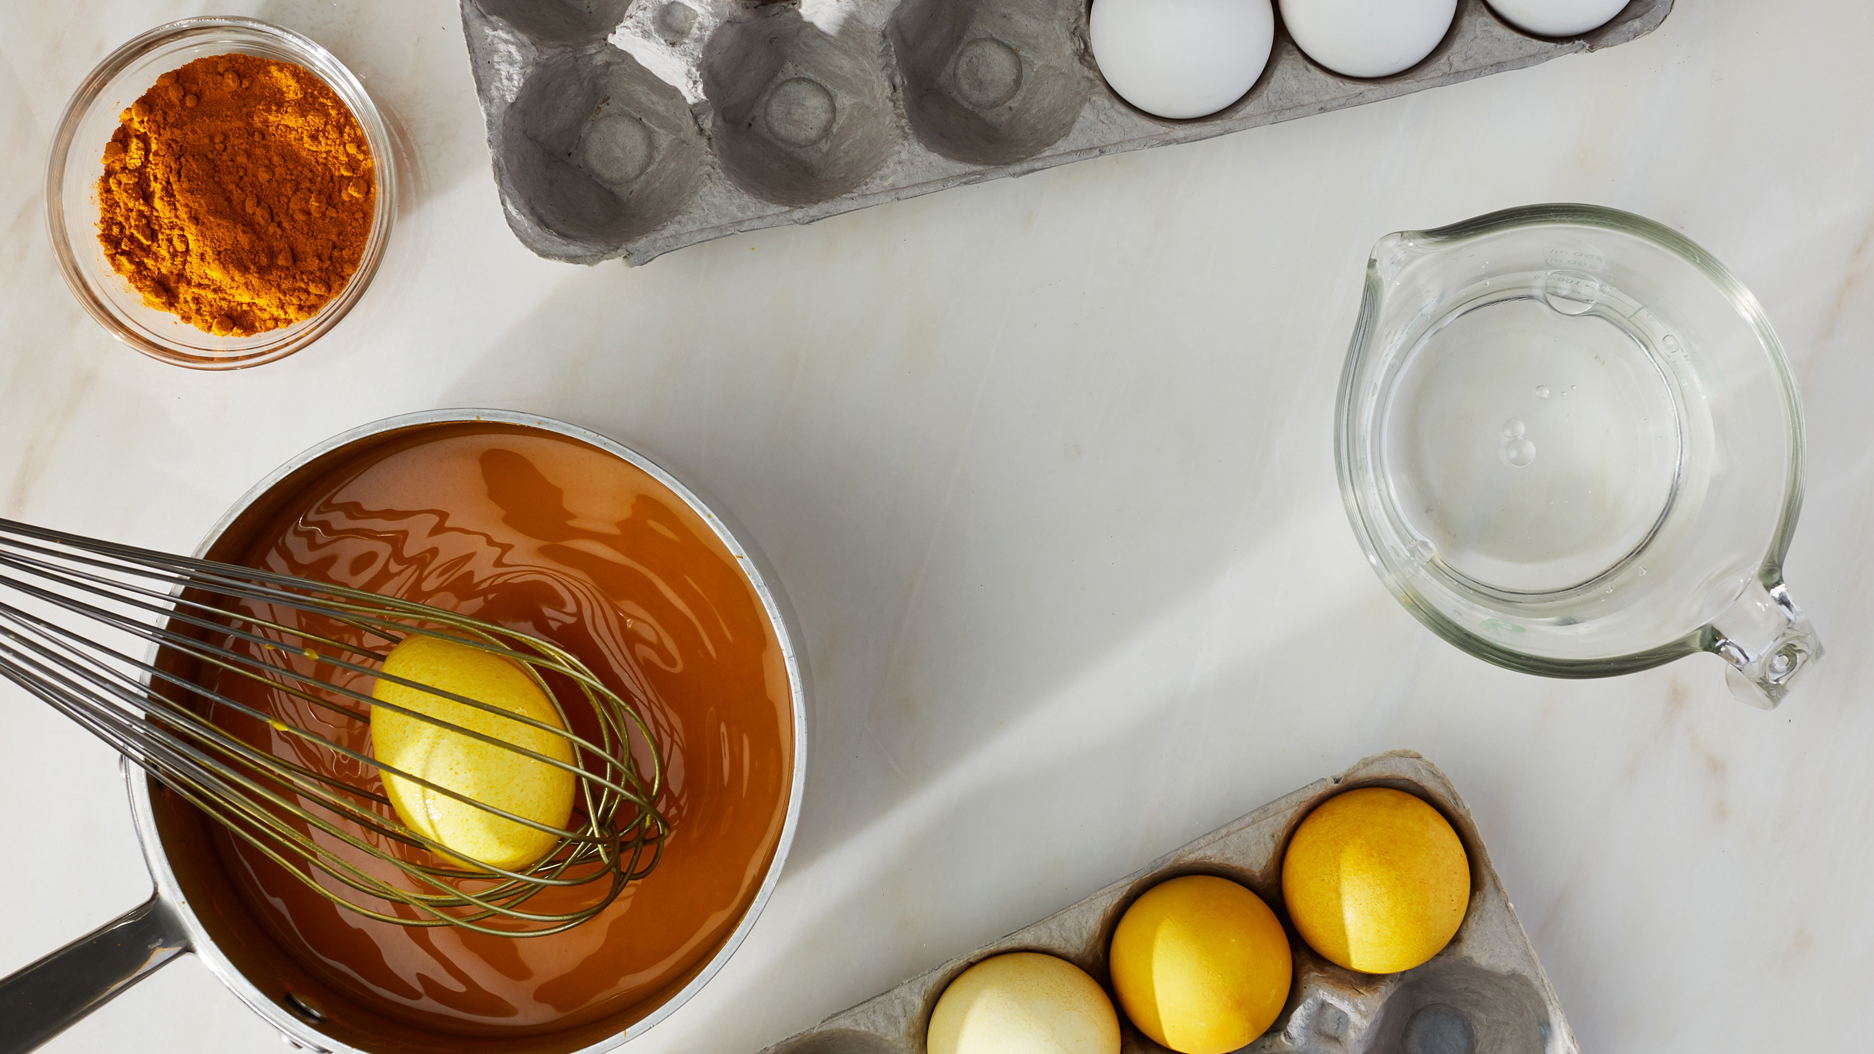 whisking an egg in a pot with orange dye